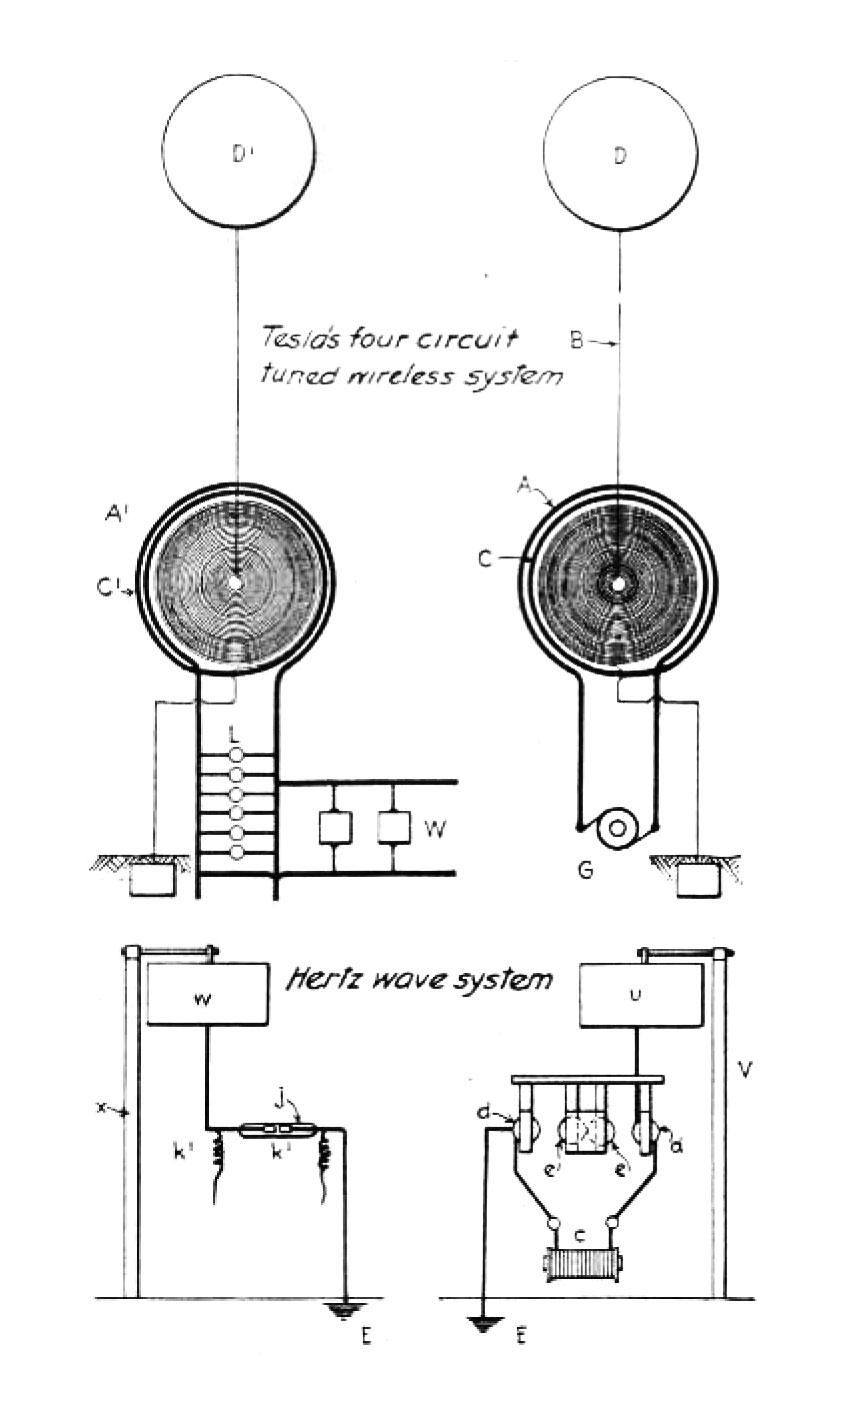 Diagram of Tesla's four-circuit tuned system